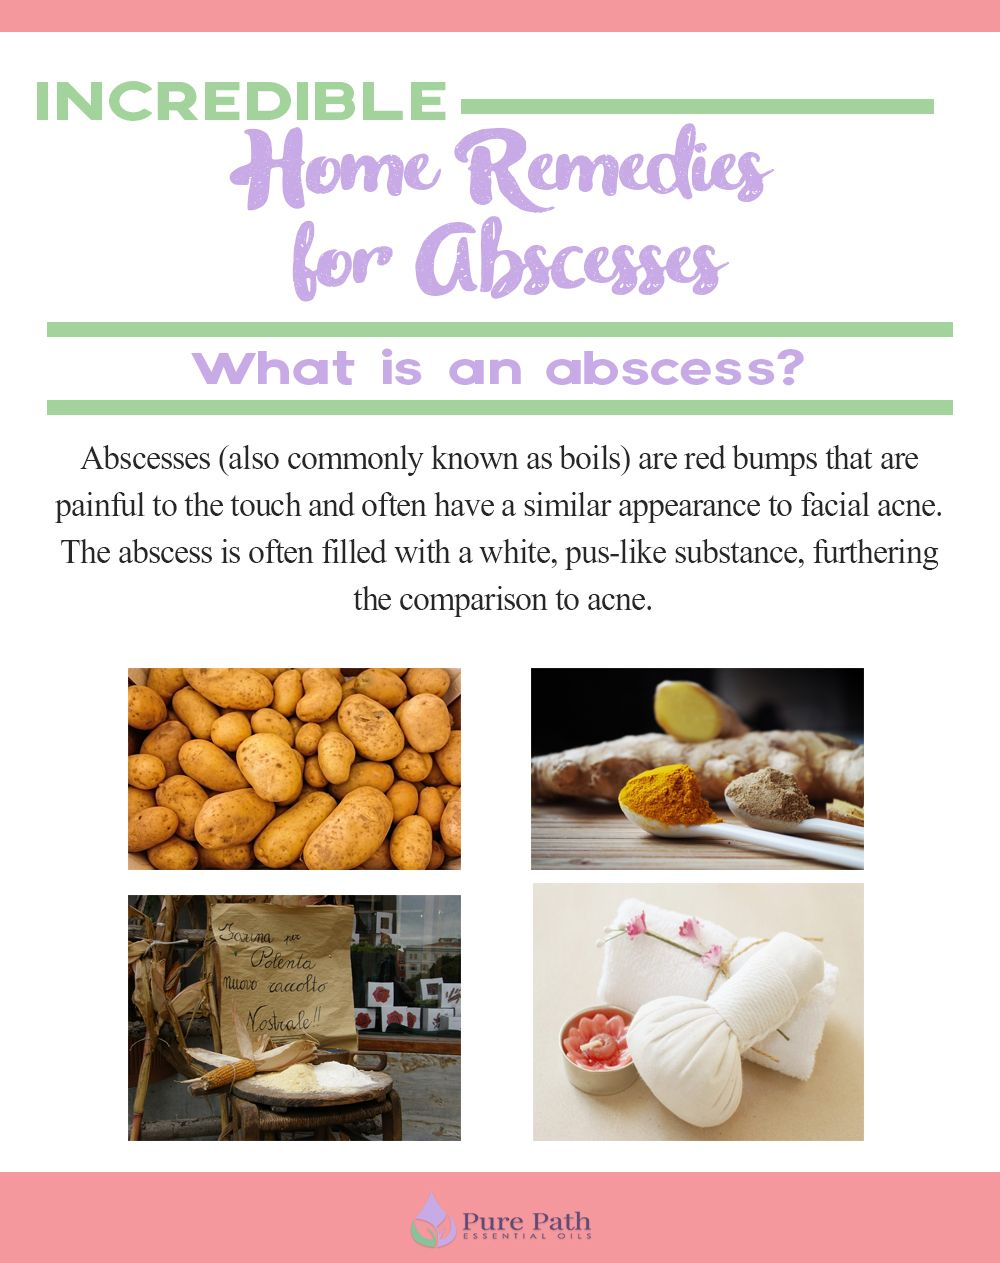 4 Incredible Home Remedies for Abscesses Home remedies